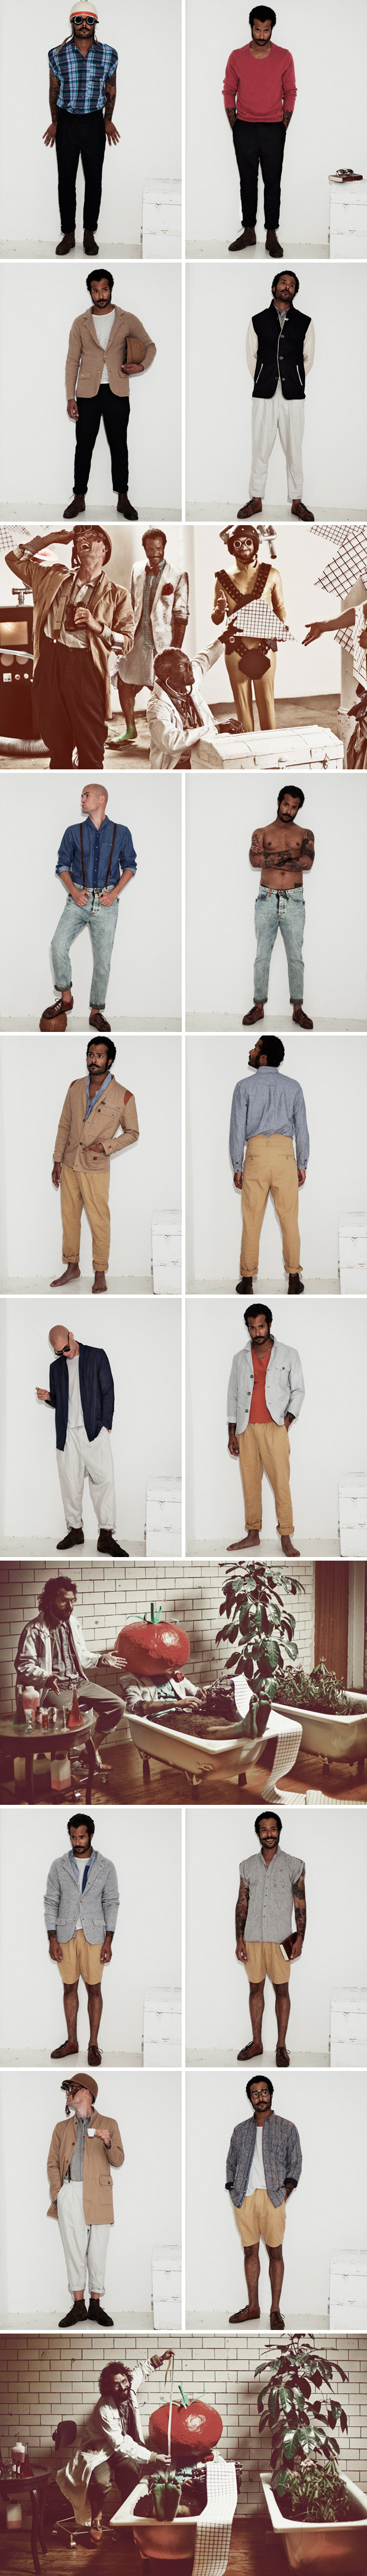 uniforms for the dedicated 2011 springsummer dummy plant 1a collection